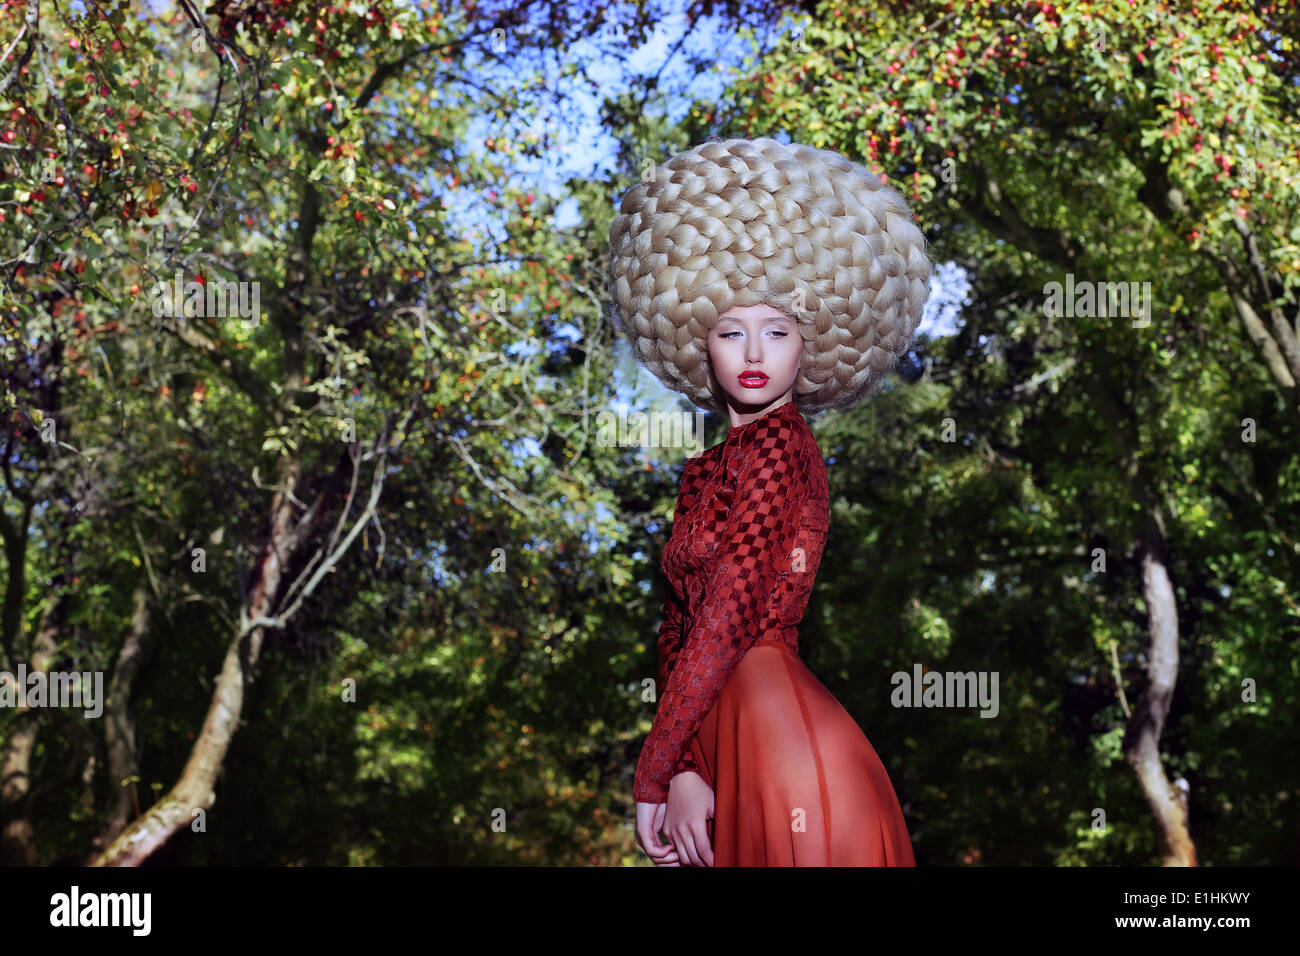 Fashion Style. Creativity. Eccentric Woman in Art Wig with Braids - Stock Image